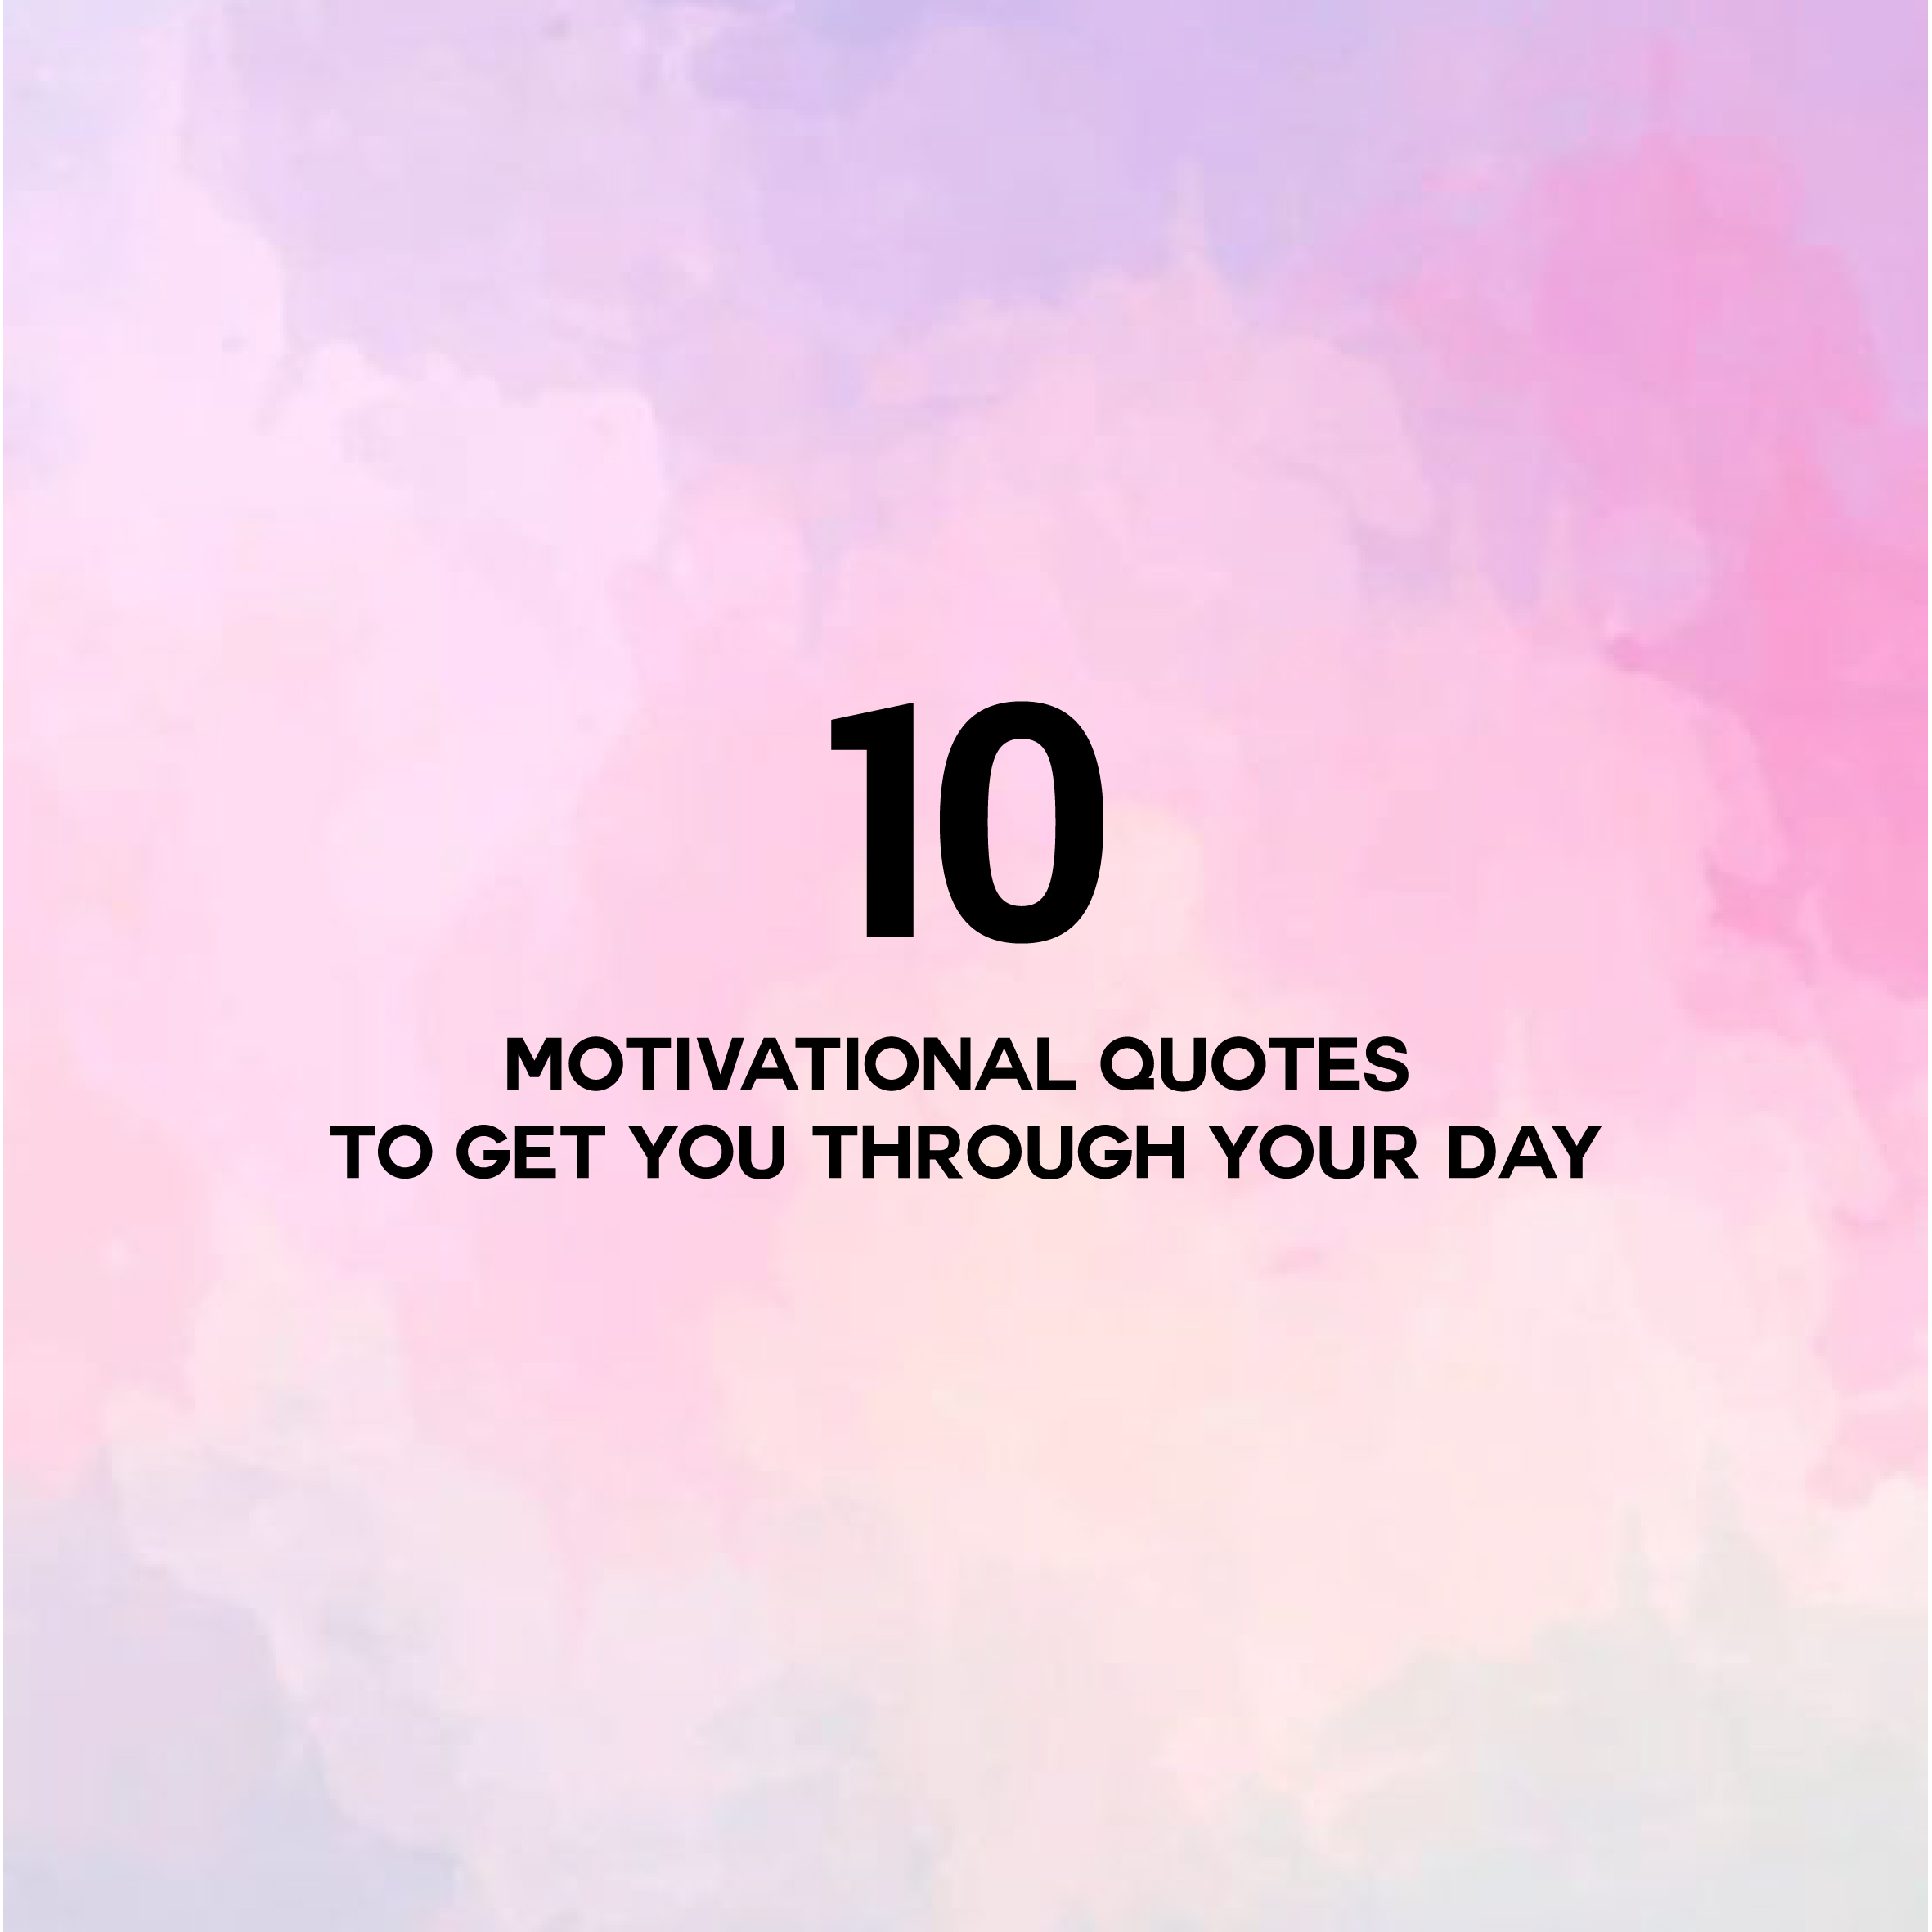 10 Motivational quotes to get you through the day